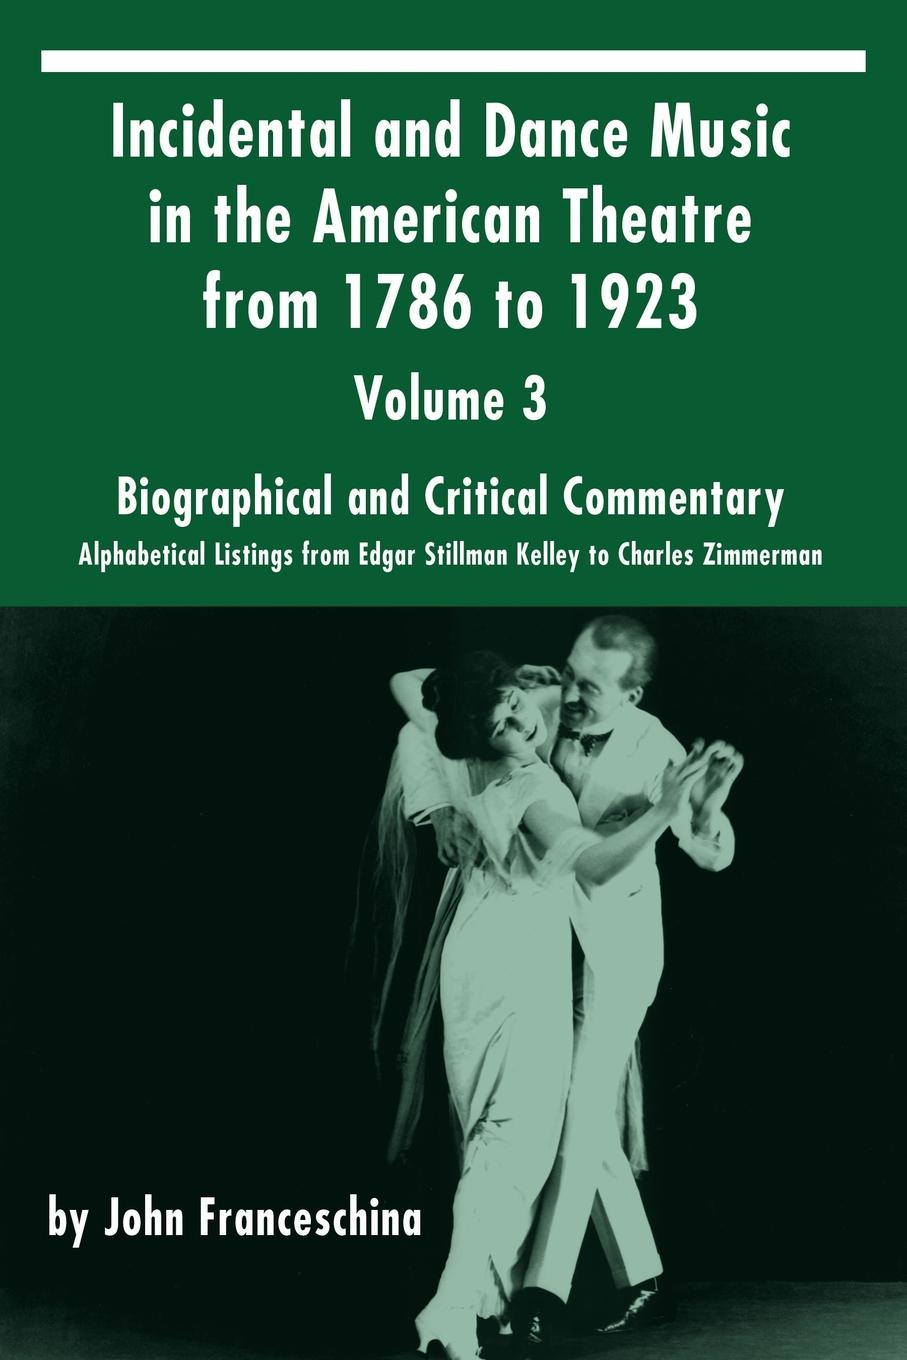 Фото John Franceschina Incidental and Dance Music in the American Theatre from 1786 to 1923. Volume 3, Biographical and Critical Commentary - Alphabetical Listings from Edgar Stillman Kelley to Charles Zimmerman